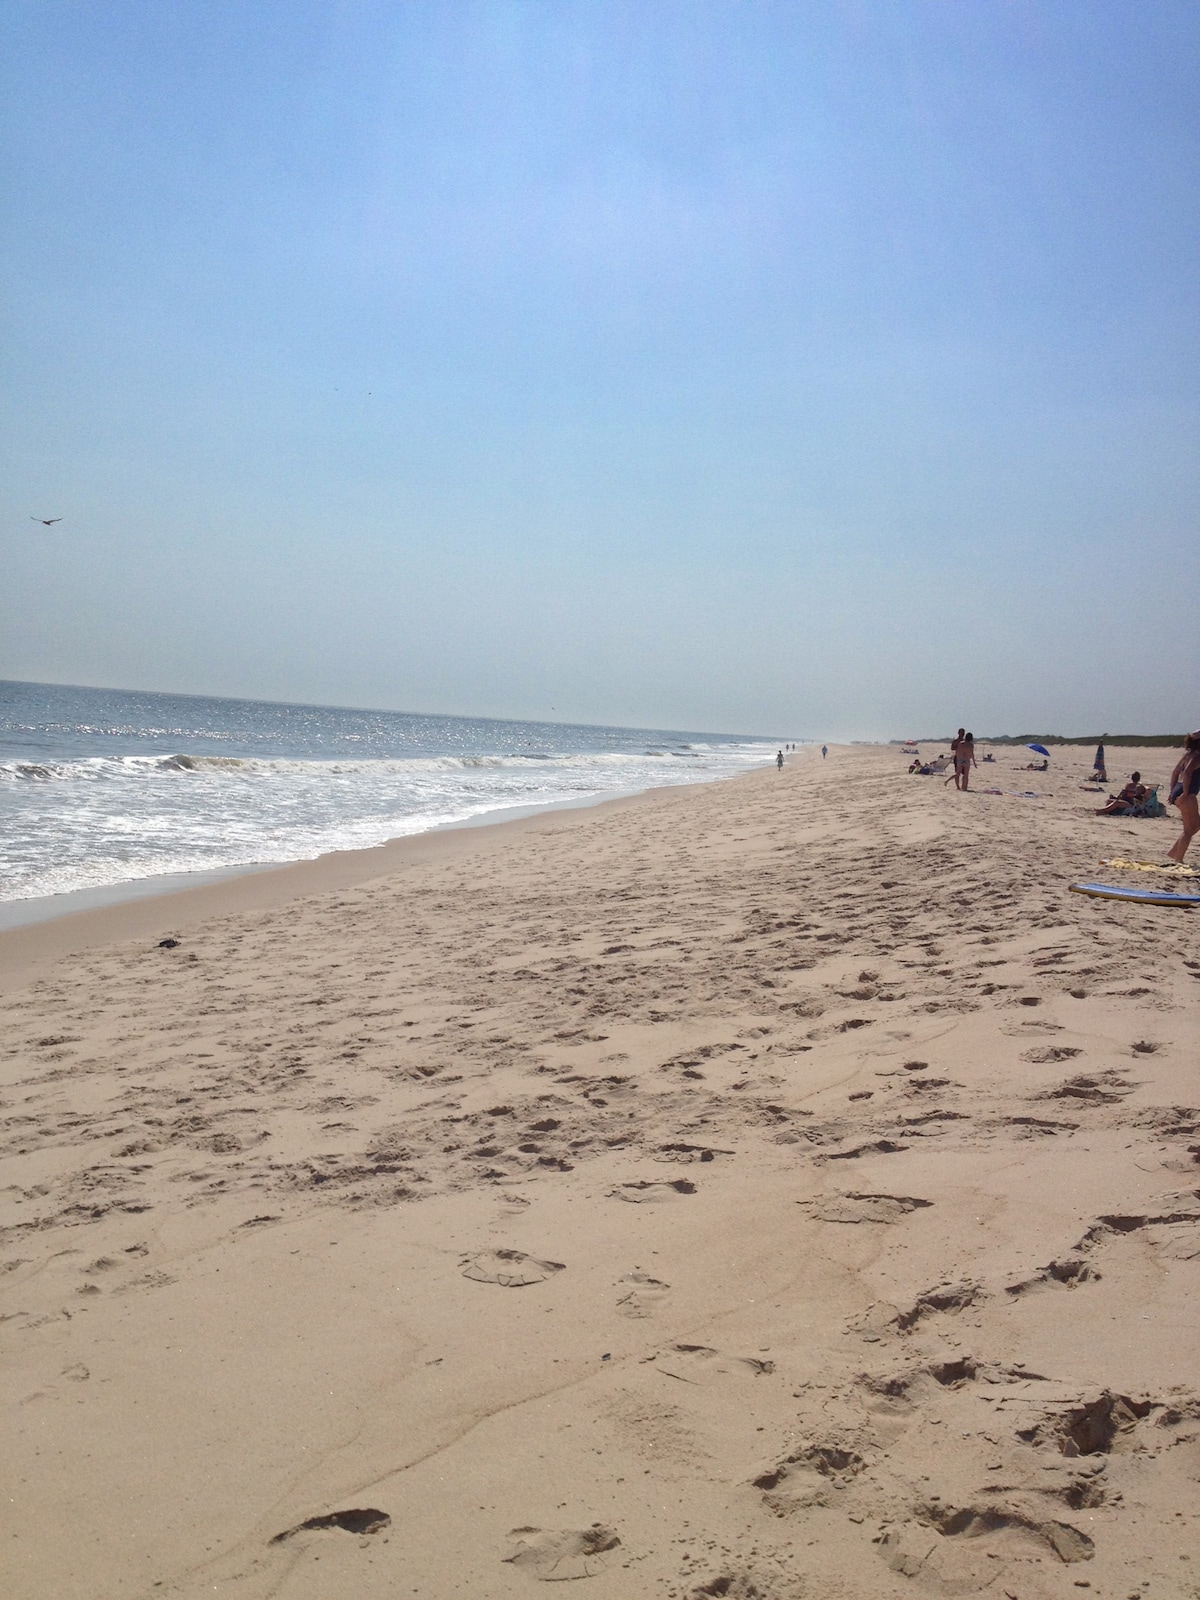 2 Mile Hollow Beach within walking distance.